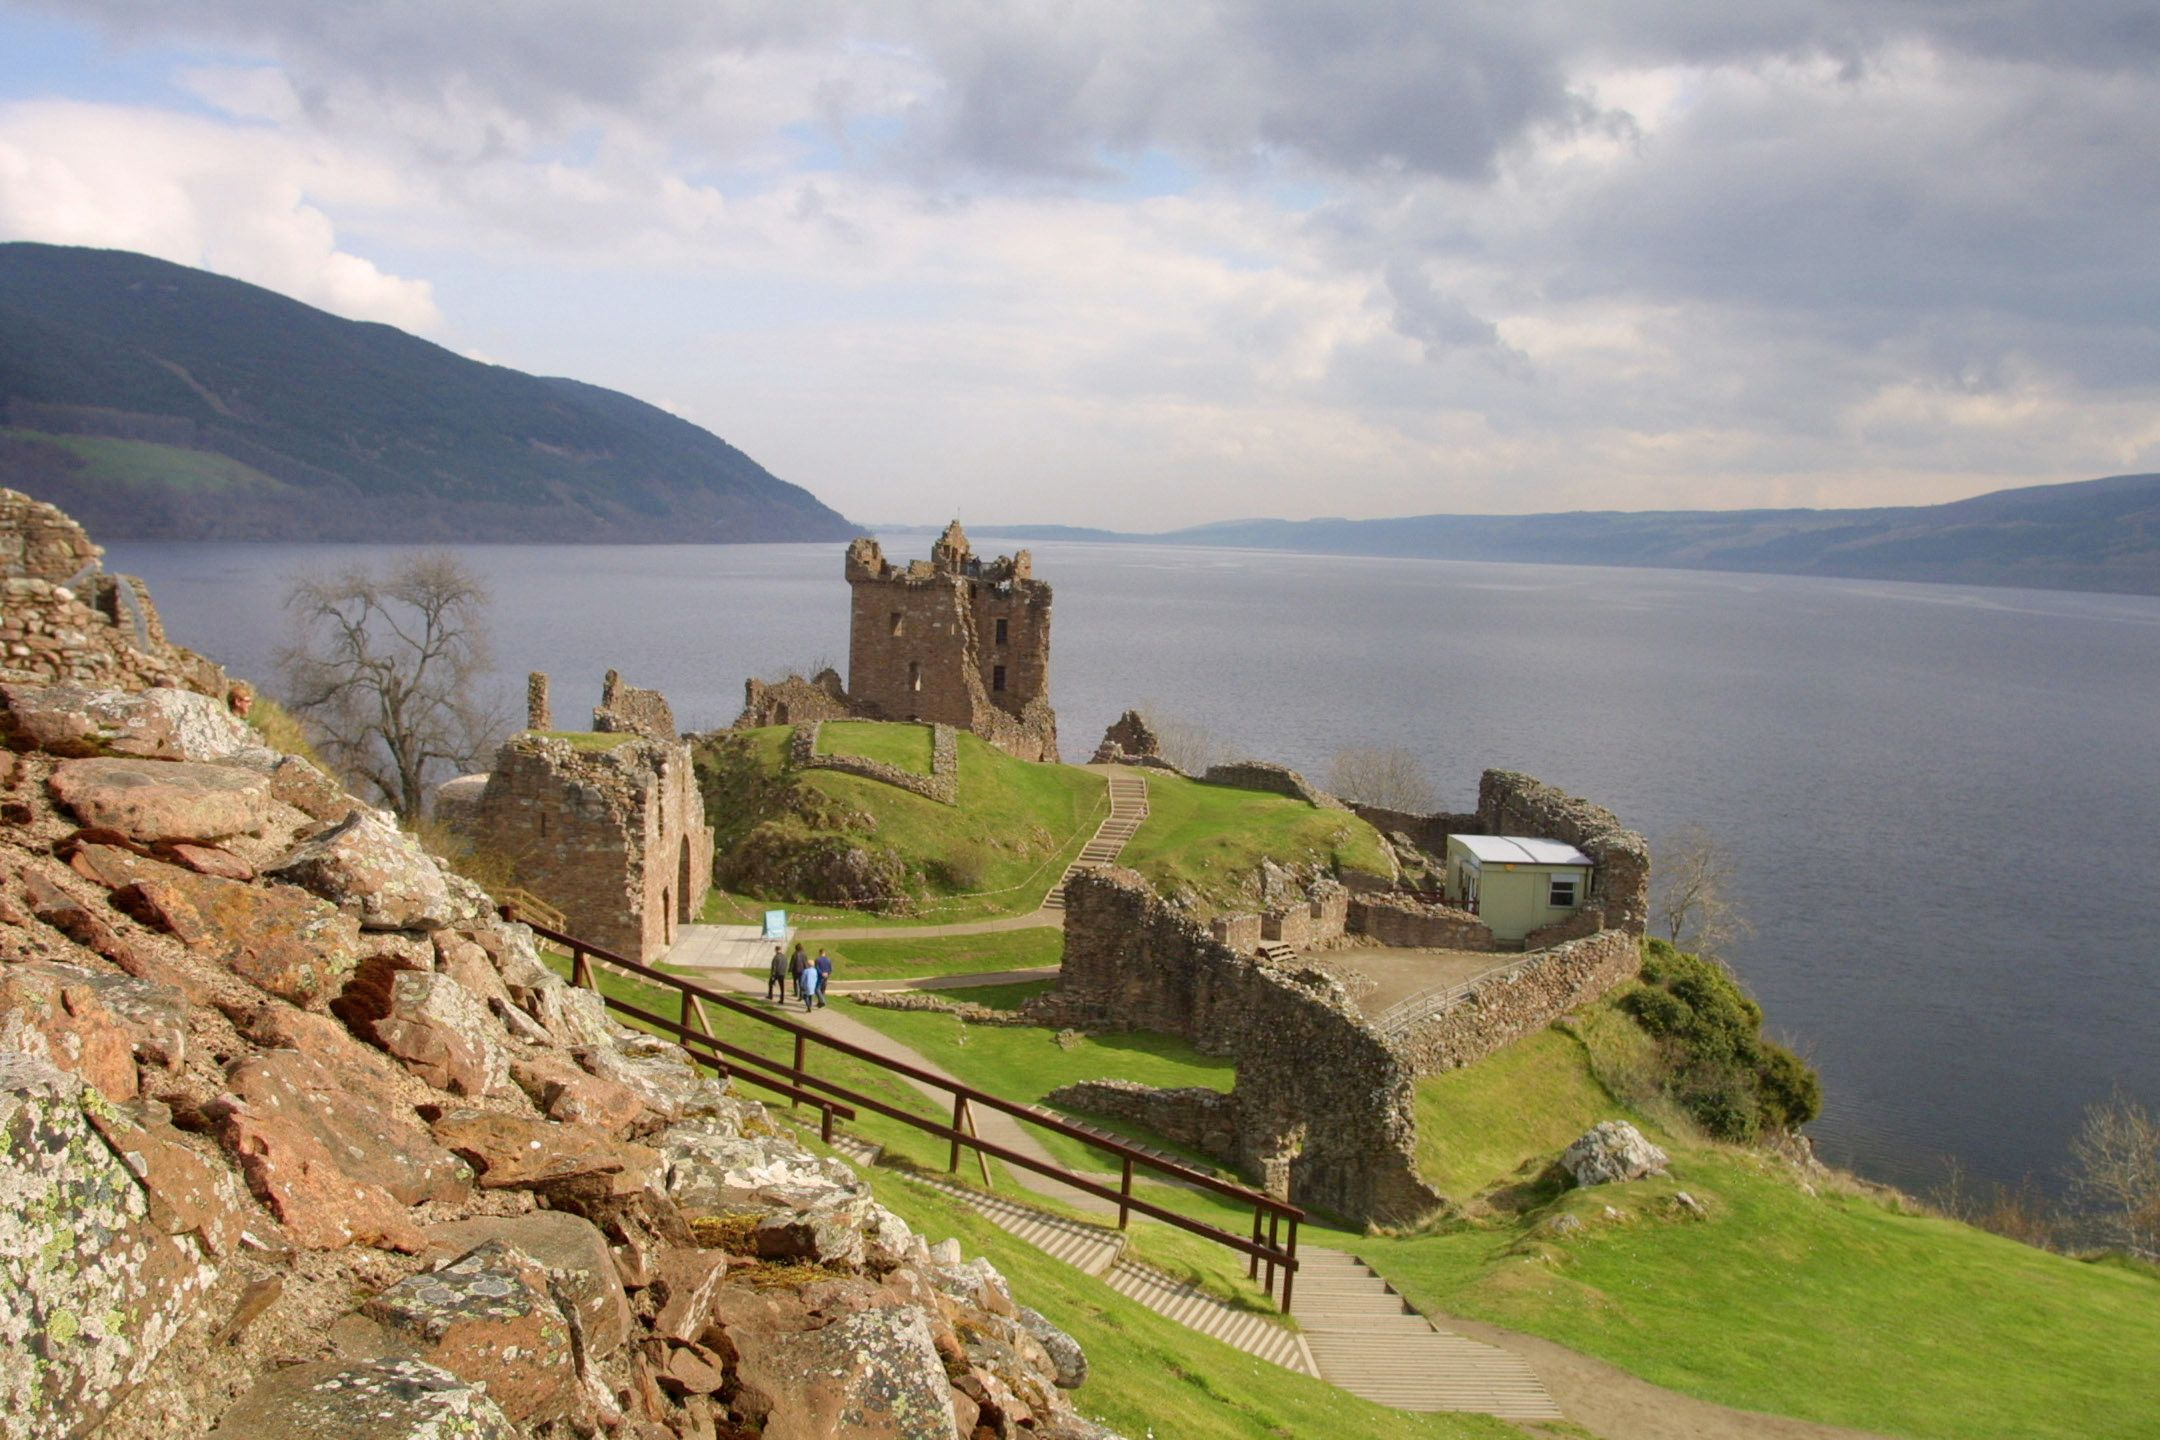 The ruined Urquhart Castle towering over the western shore of Loch Ness at Drumnadrochit. The loch is famed for the myt